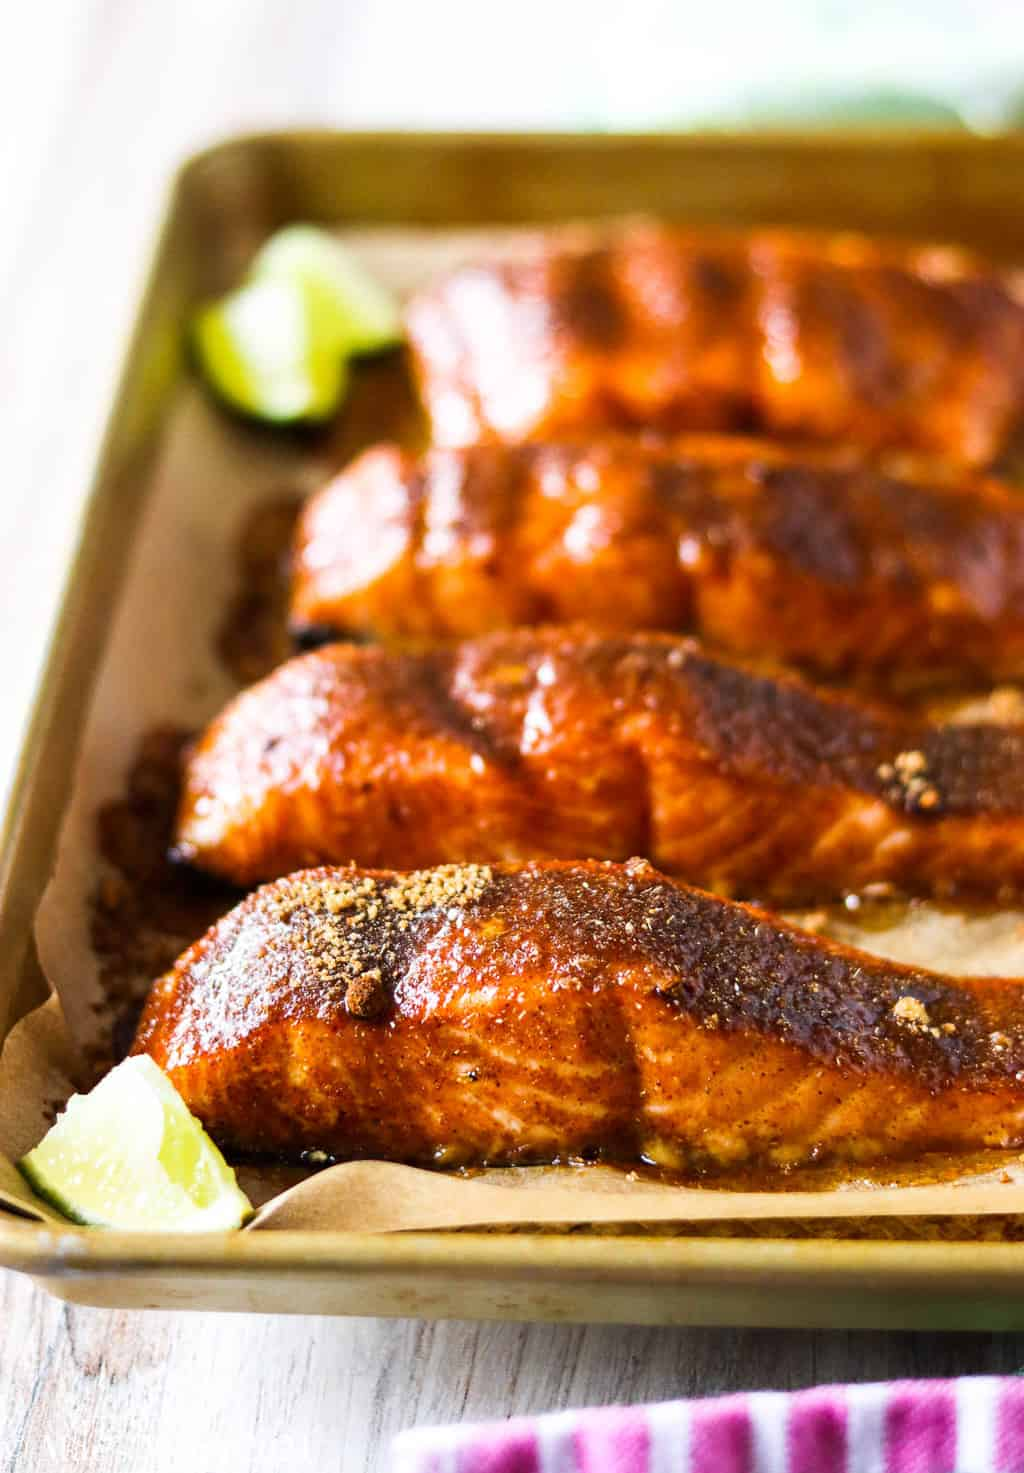 An up close side shot of a pan of spicy brown sugar salmon wih limes